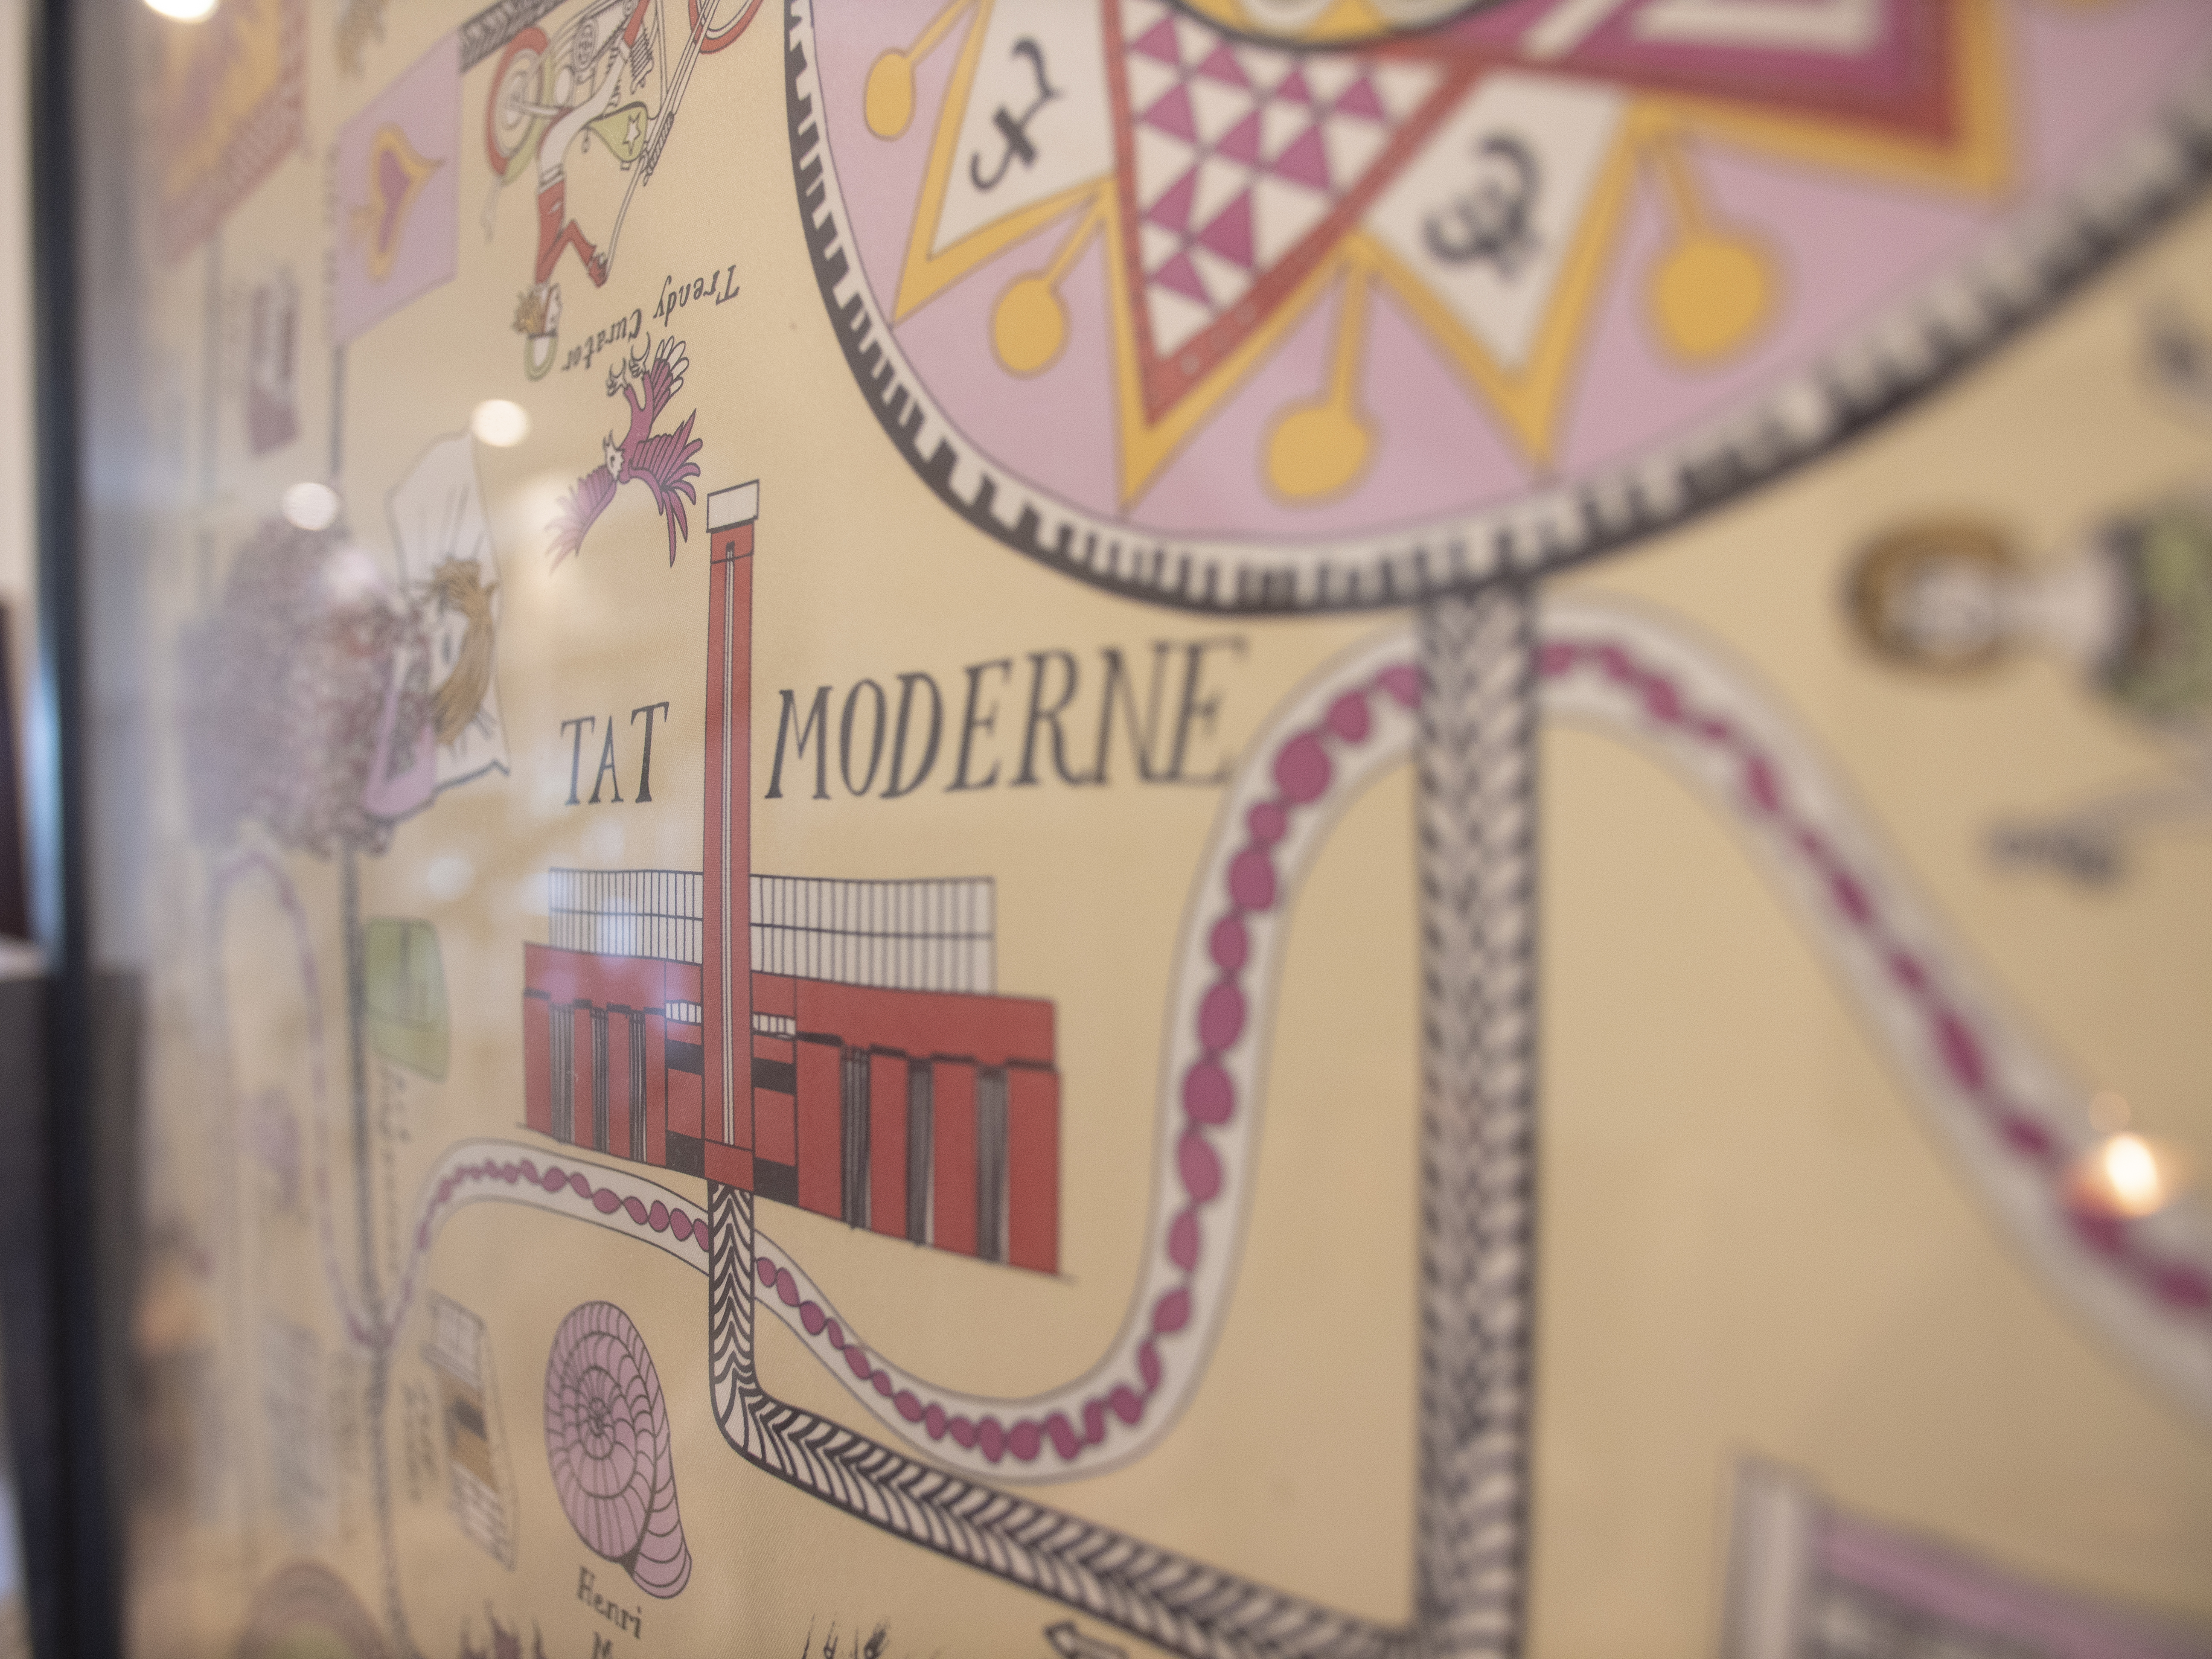 Silk scarf designed by Grayson Perry